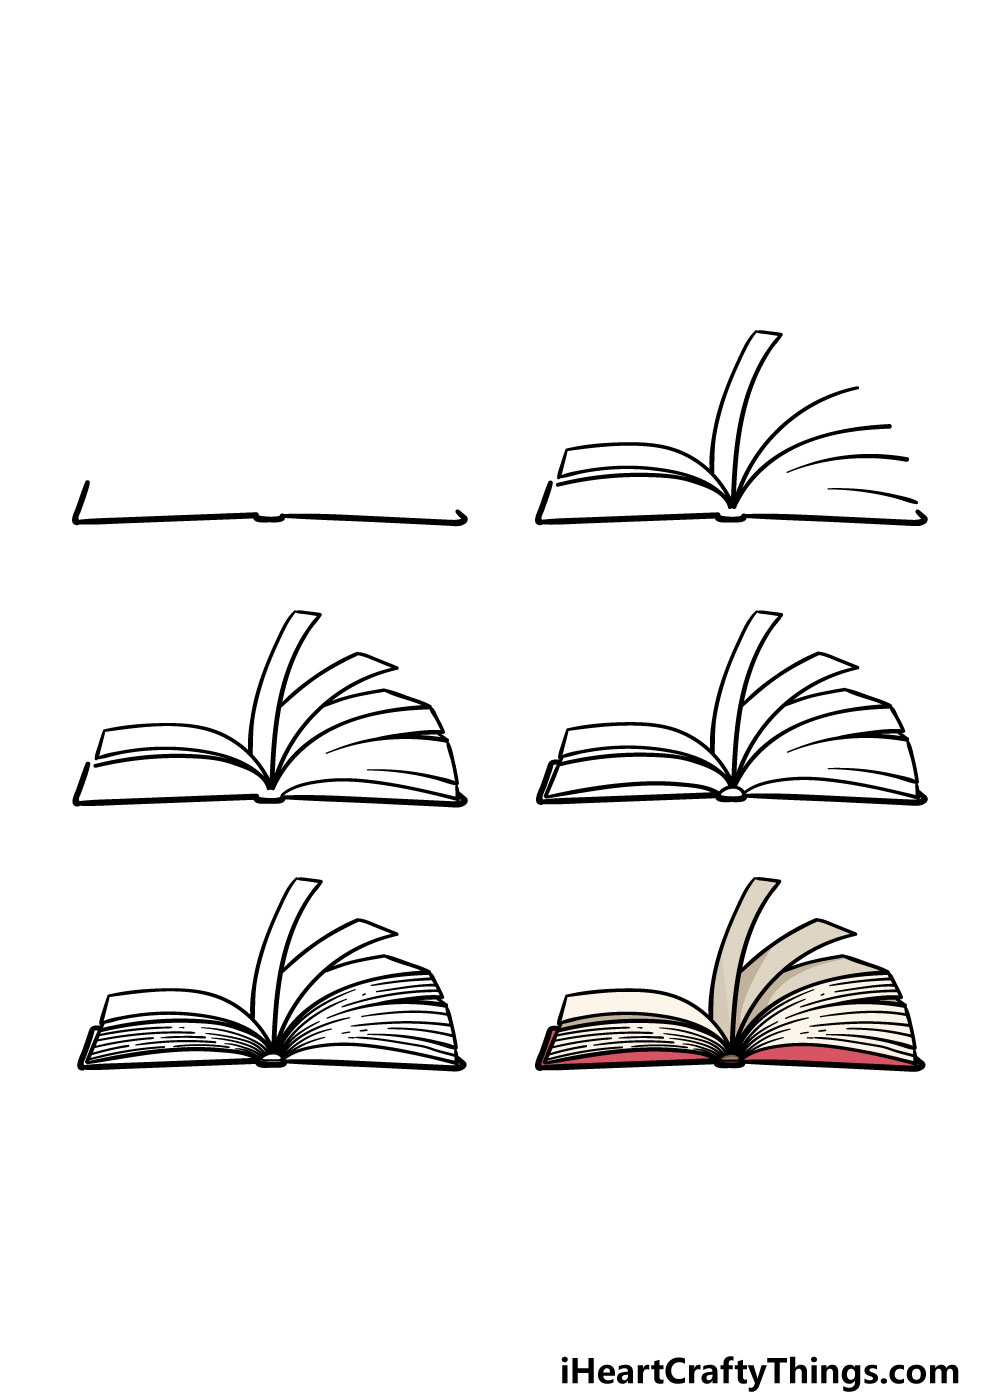 how to draw an open book in 6 steps